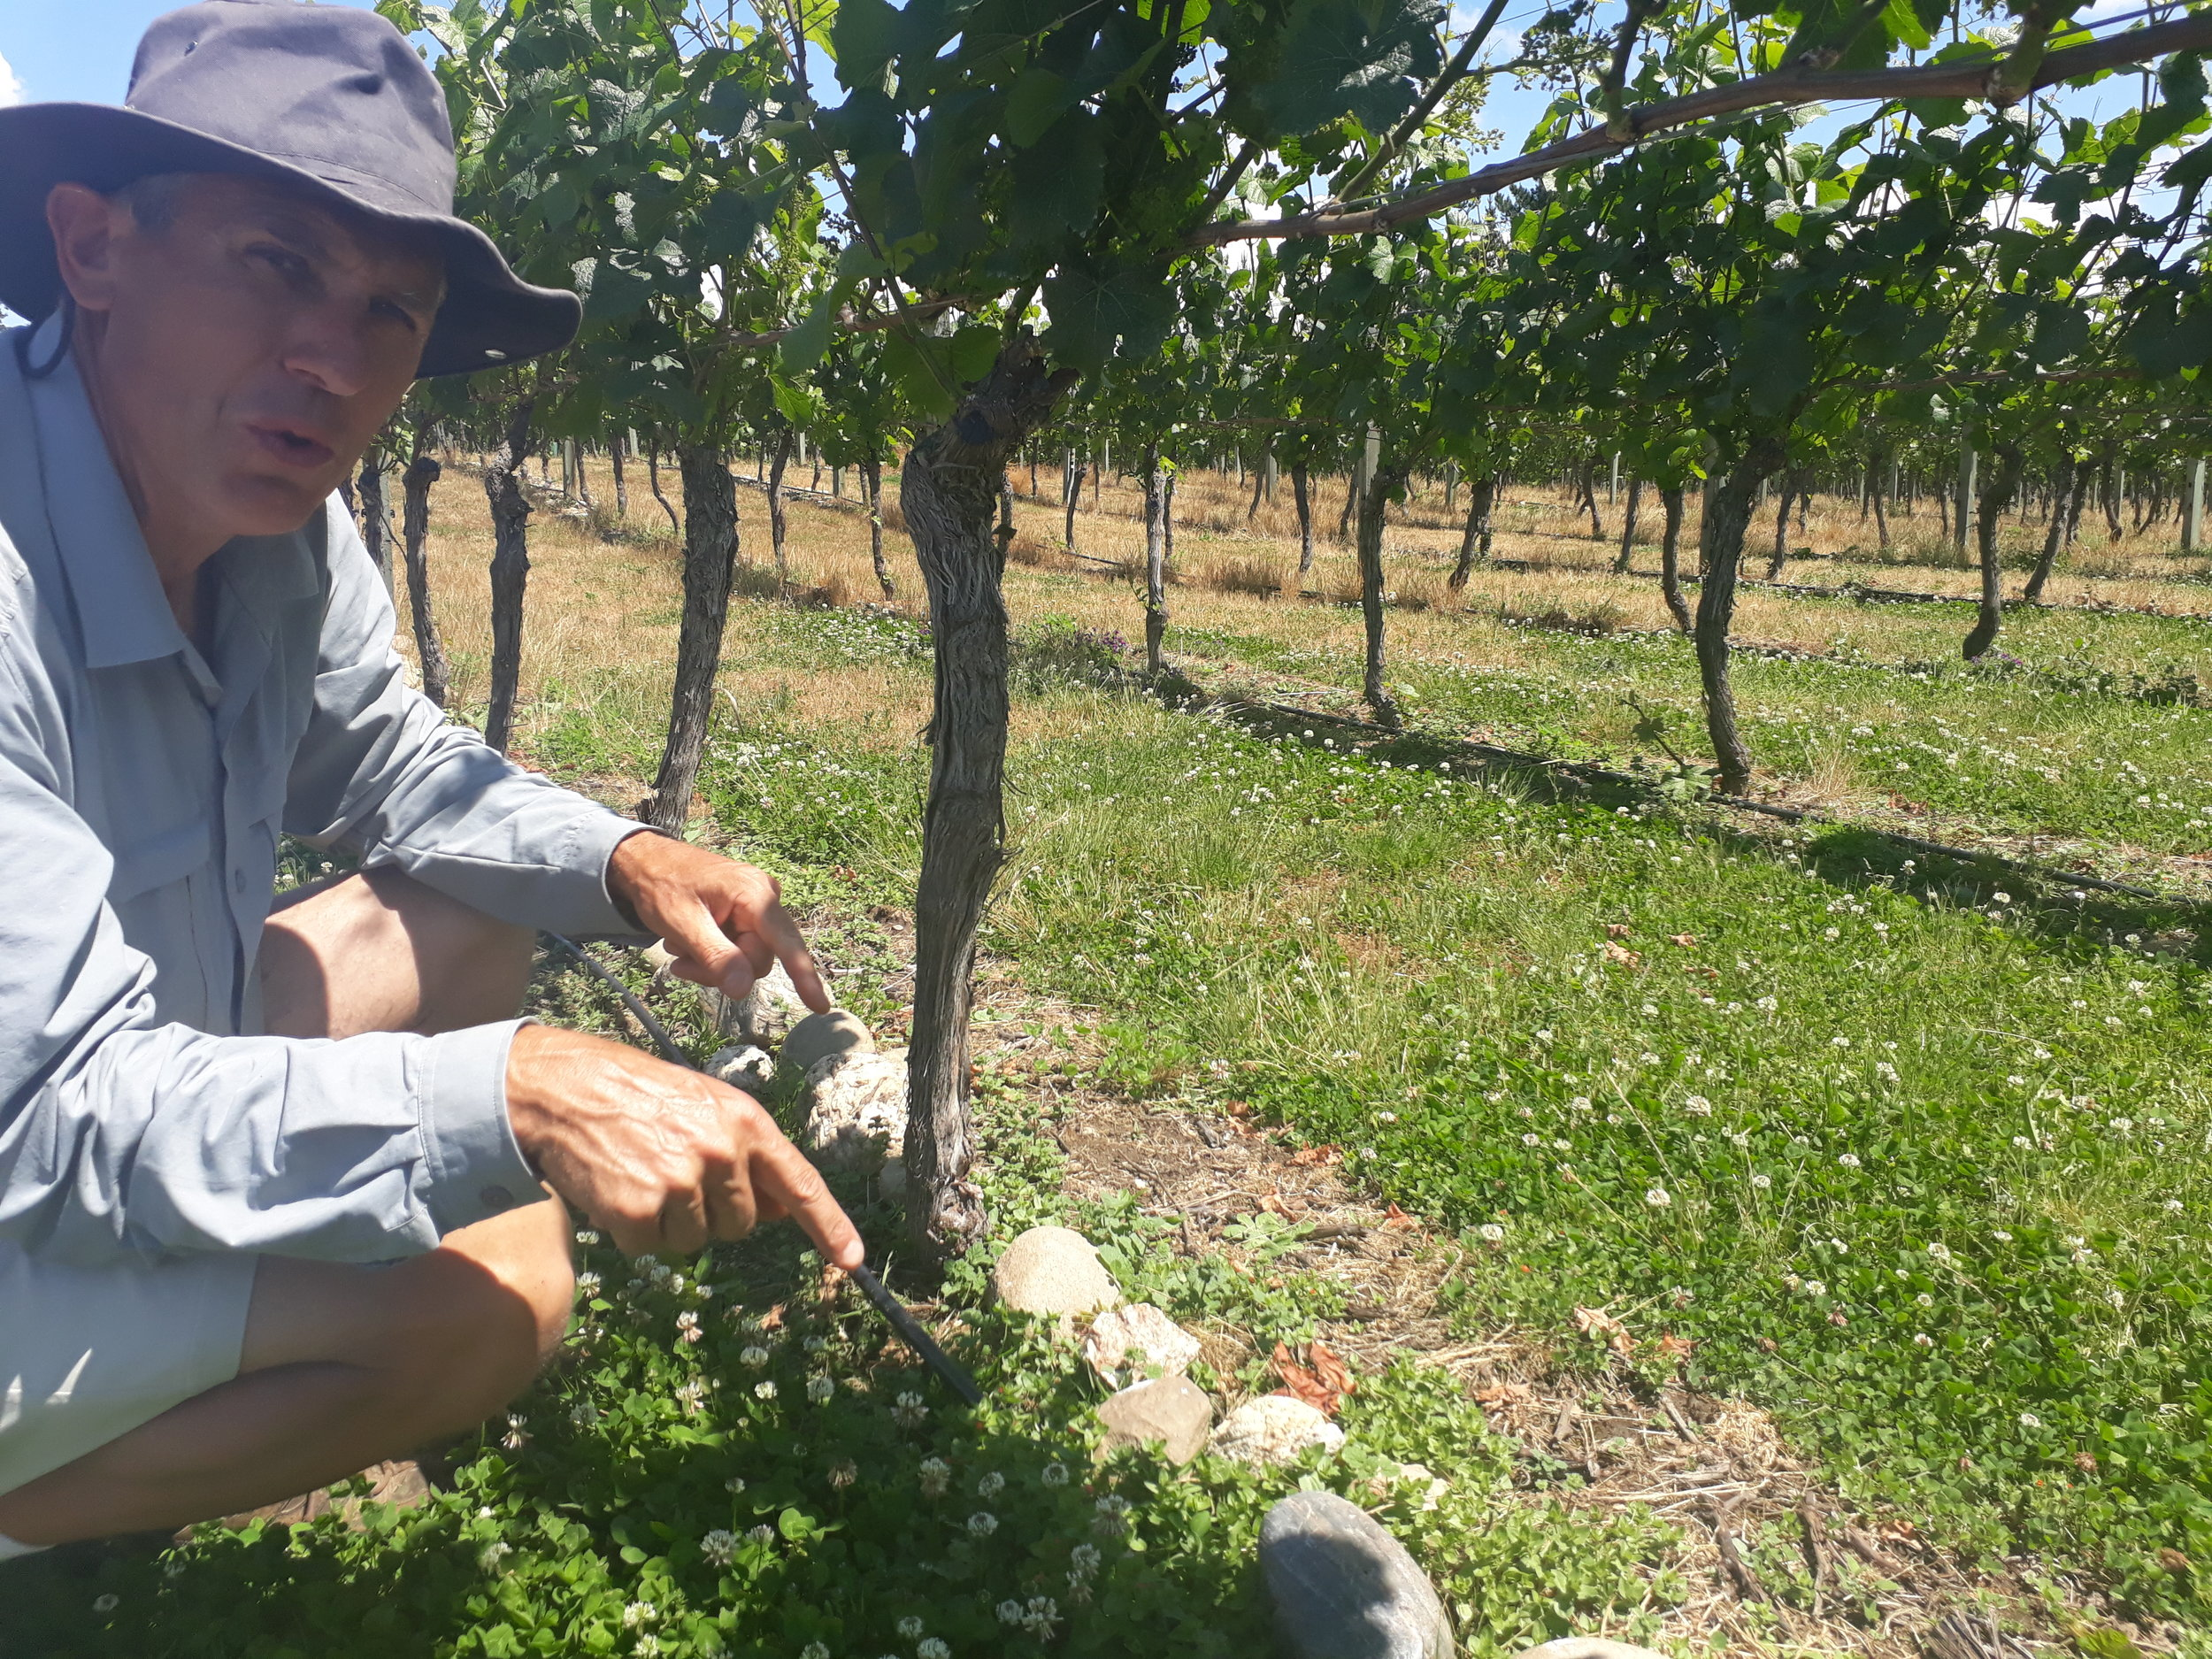 Paul Keast showing off the rocks of his vineyard with a green patch visible as water naturally flows down the slope.